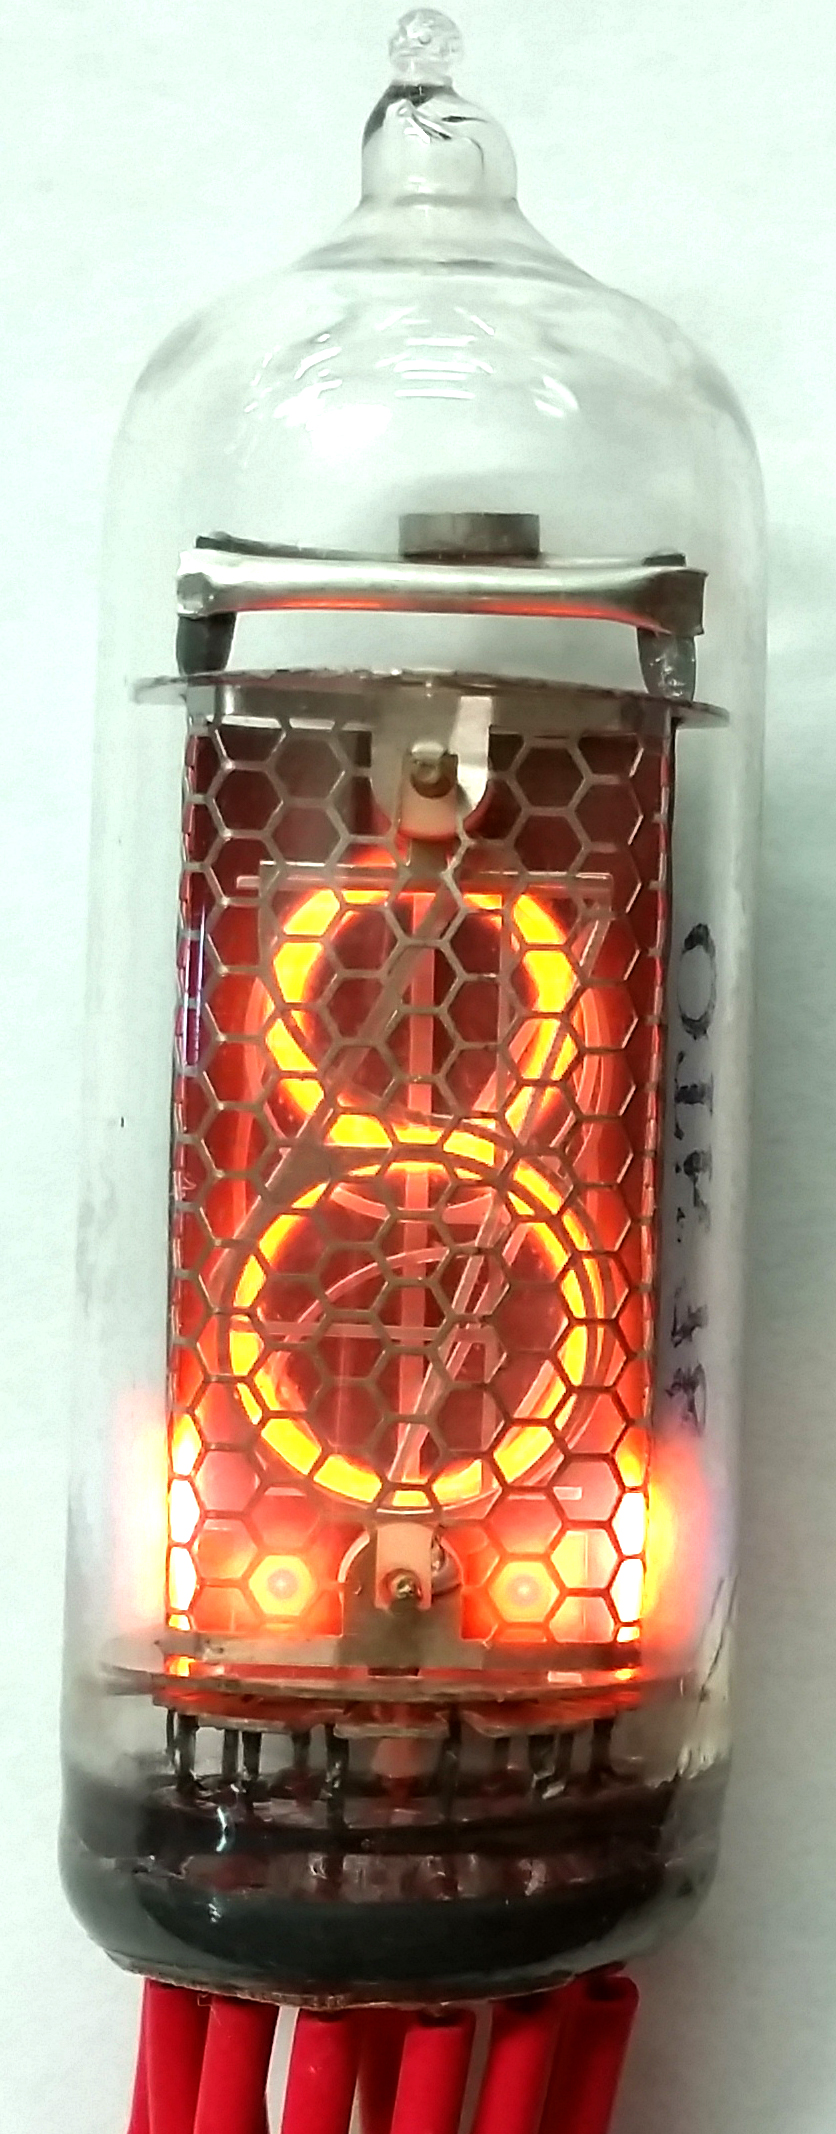 IN 14 Nixie Tube Cold Cathode Display Single Digit 0 To 9 Vertical Mount